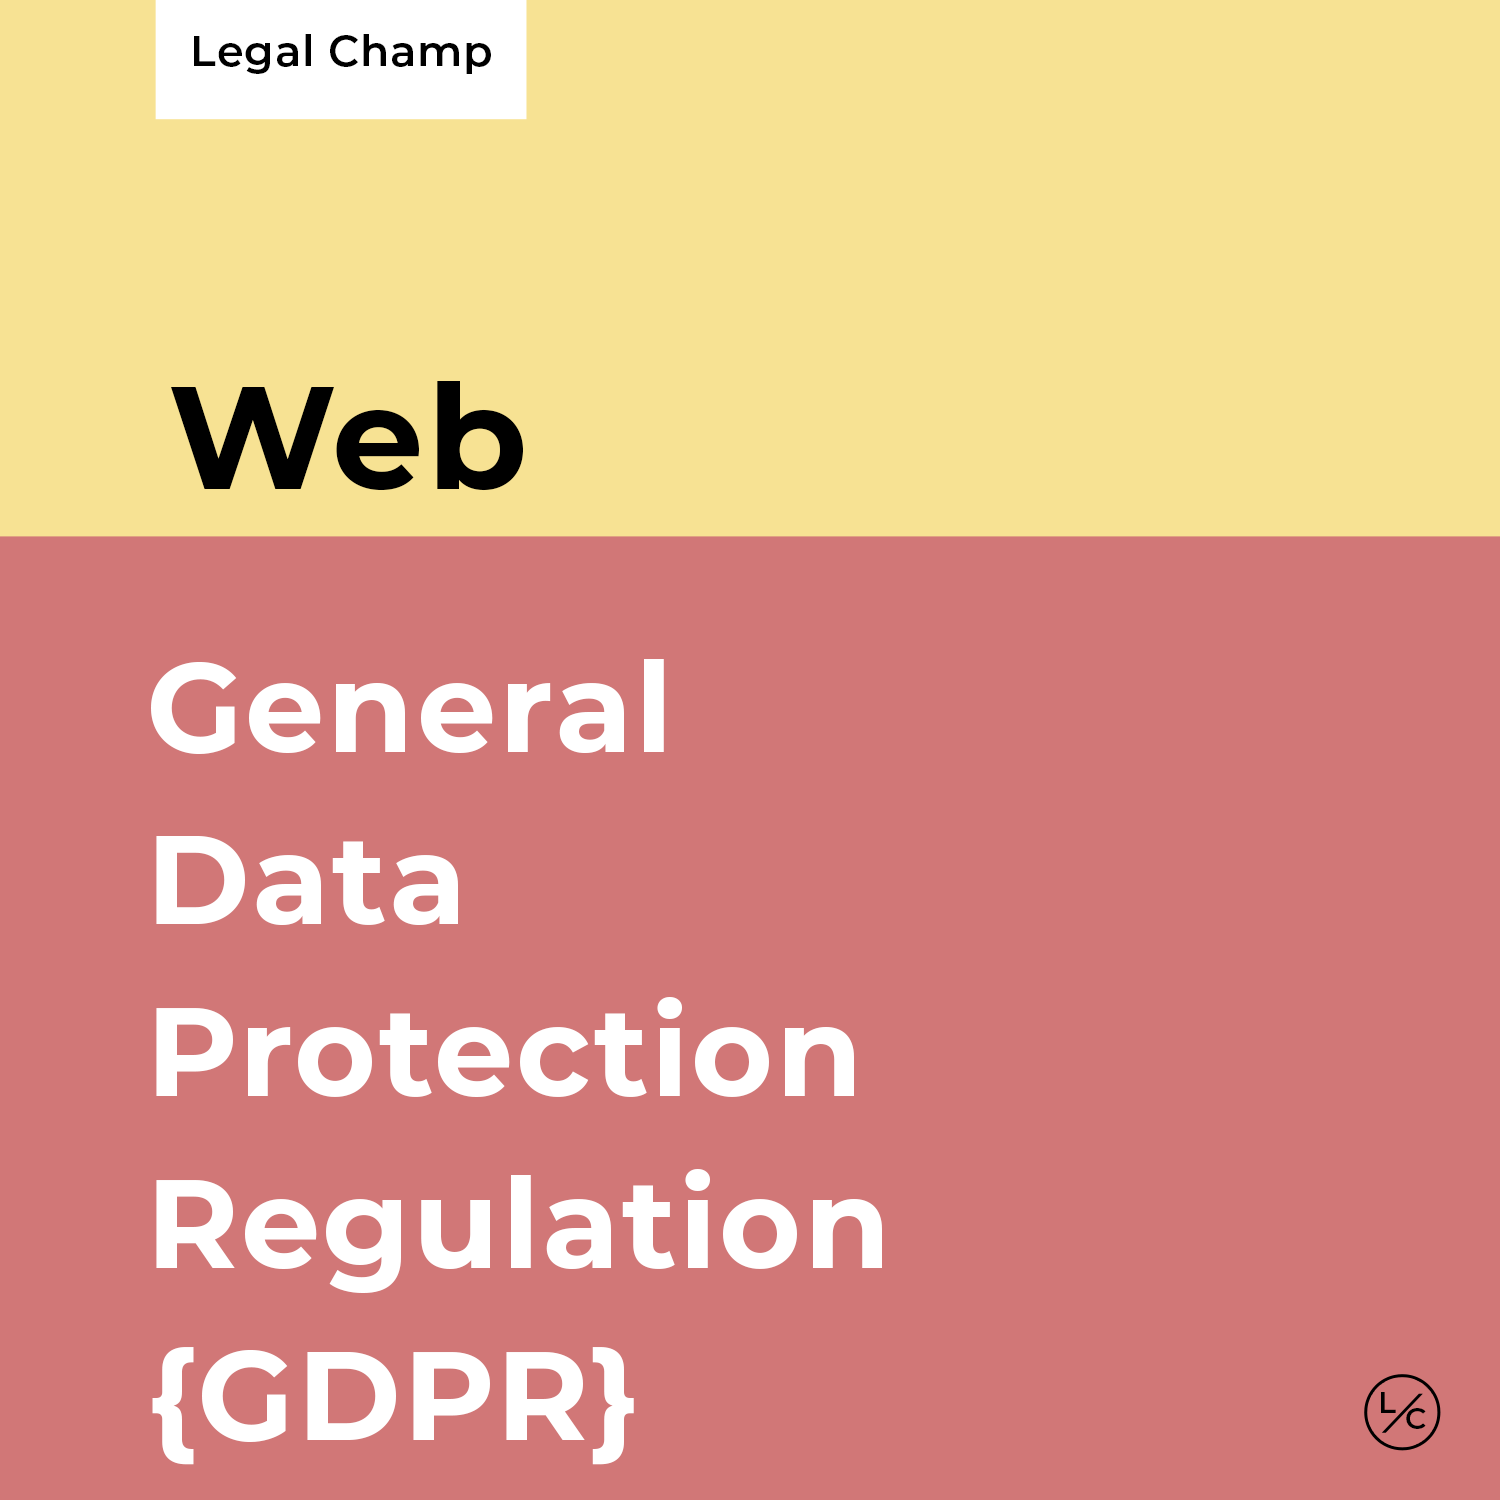 General Data Protection Regulation [GDPR]